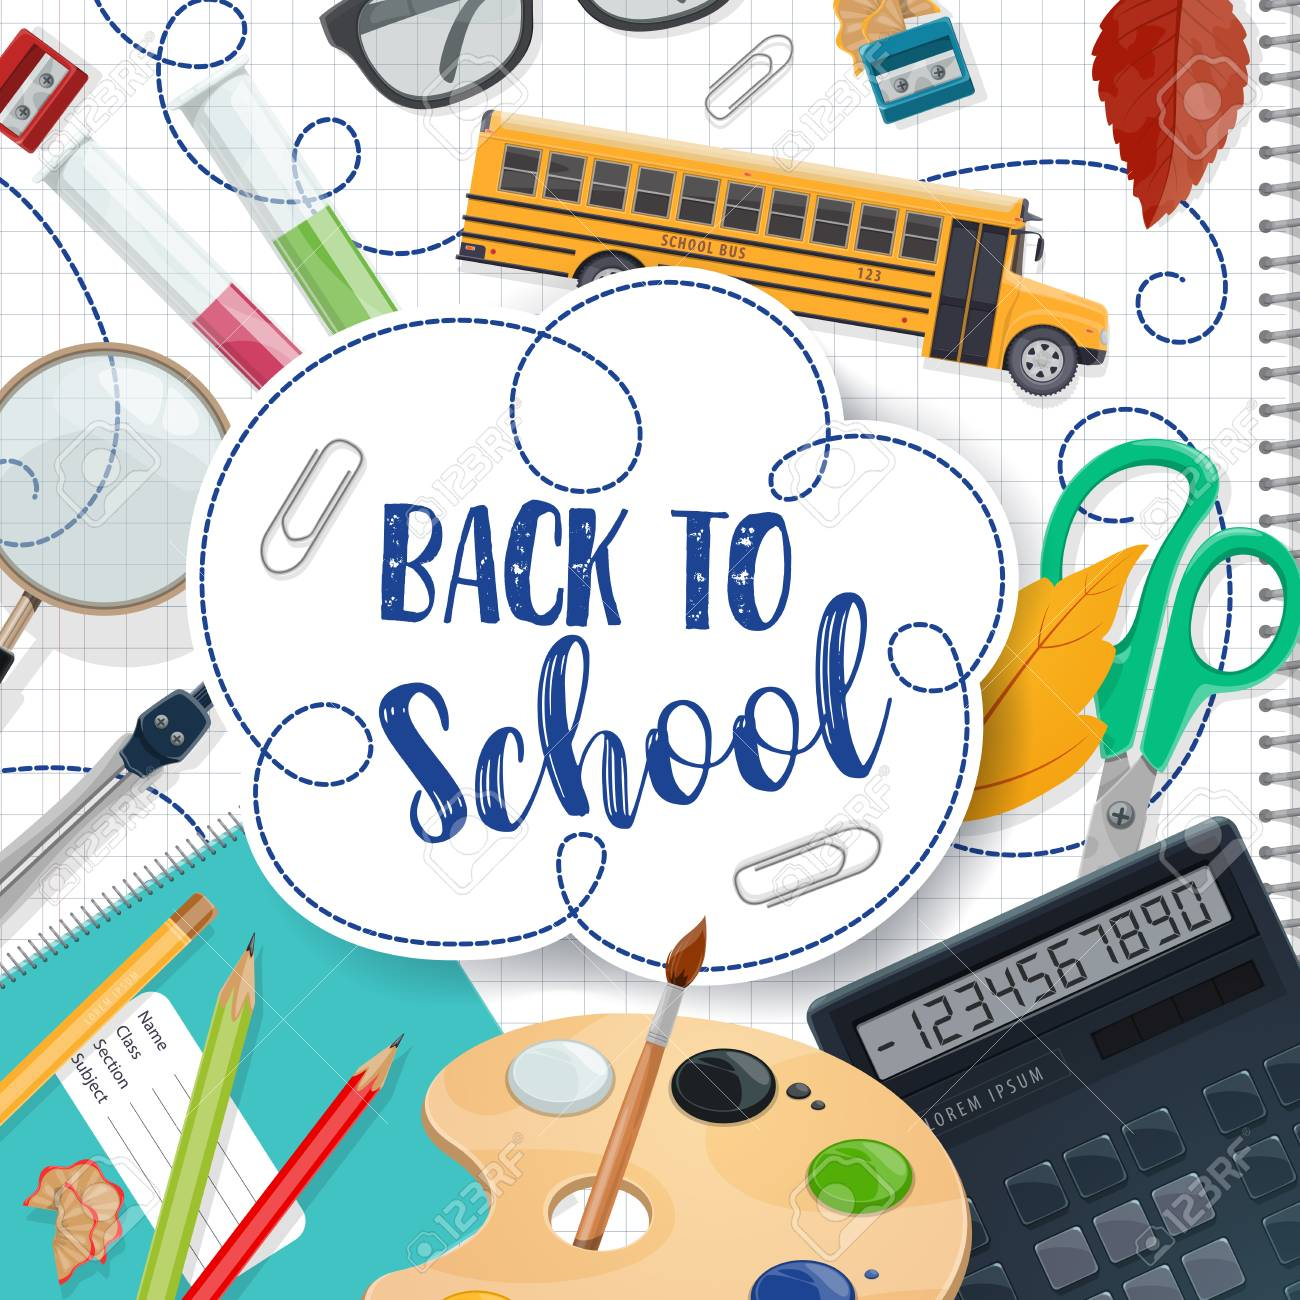 Back to School poster with ink pen lettering for September education season. Vector school bus and lessons study stationery, math ruler or calculator or teacher glasses and paints with brush - 107368878